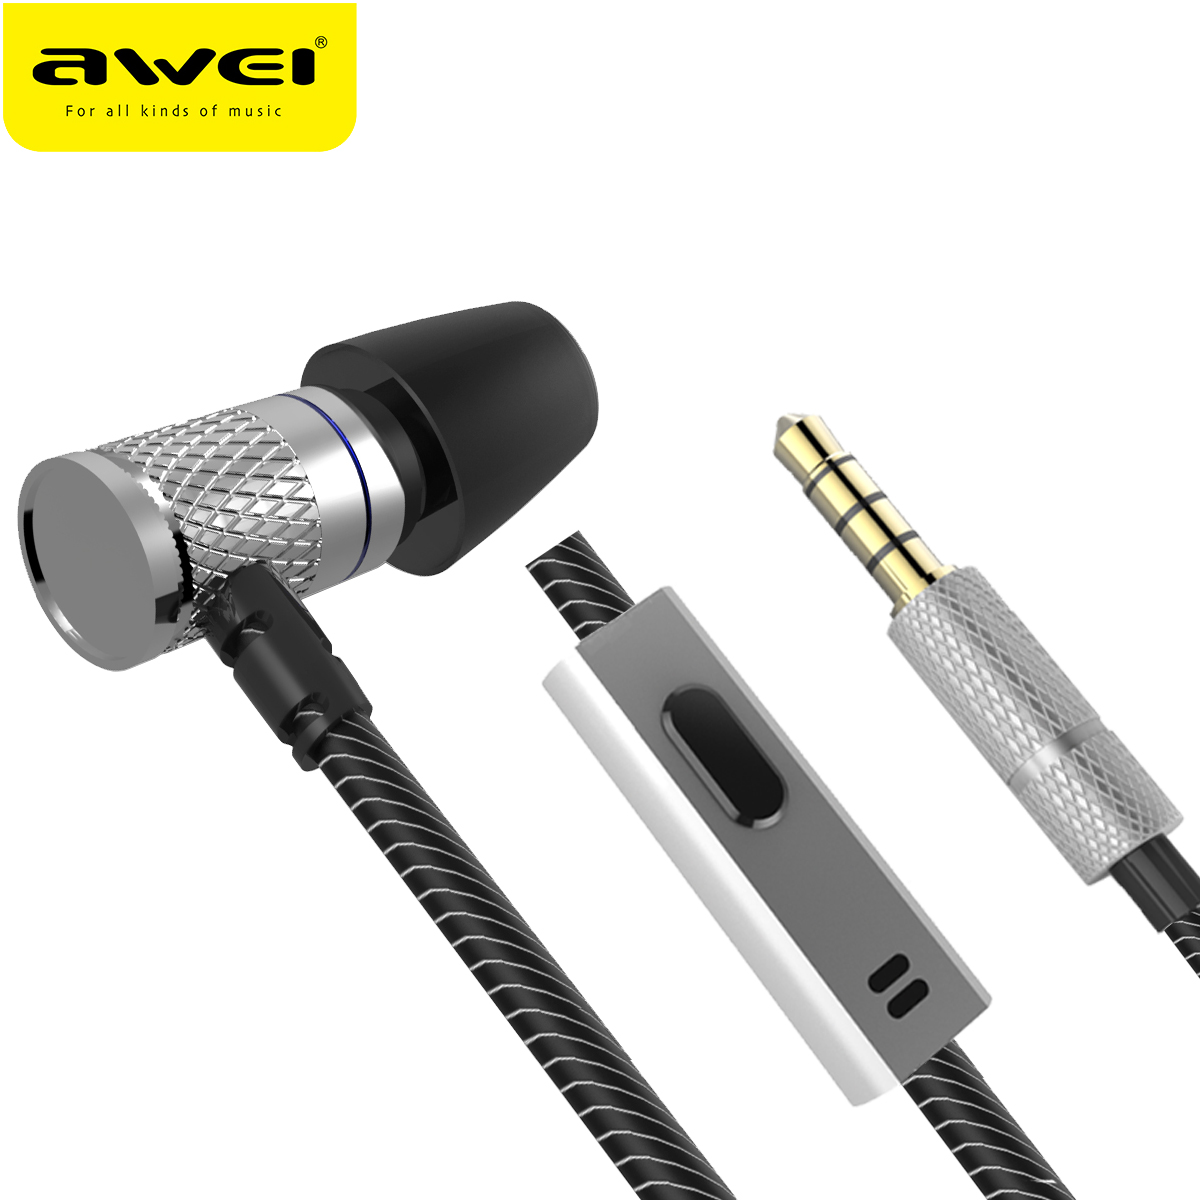 AWEI ES-660I In-Ear Wired Earphone Metal Headset HIFI fone de ouvido Audifonos Casque Heavy Bass Earbuds Headset With Mic awei es 70ty 3 5mm aux audio in ear earphone metal heavy bass sound music headset with mic fone de ouvido earphone for phone